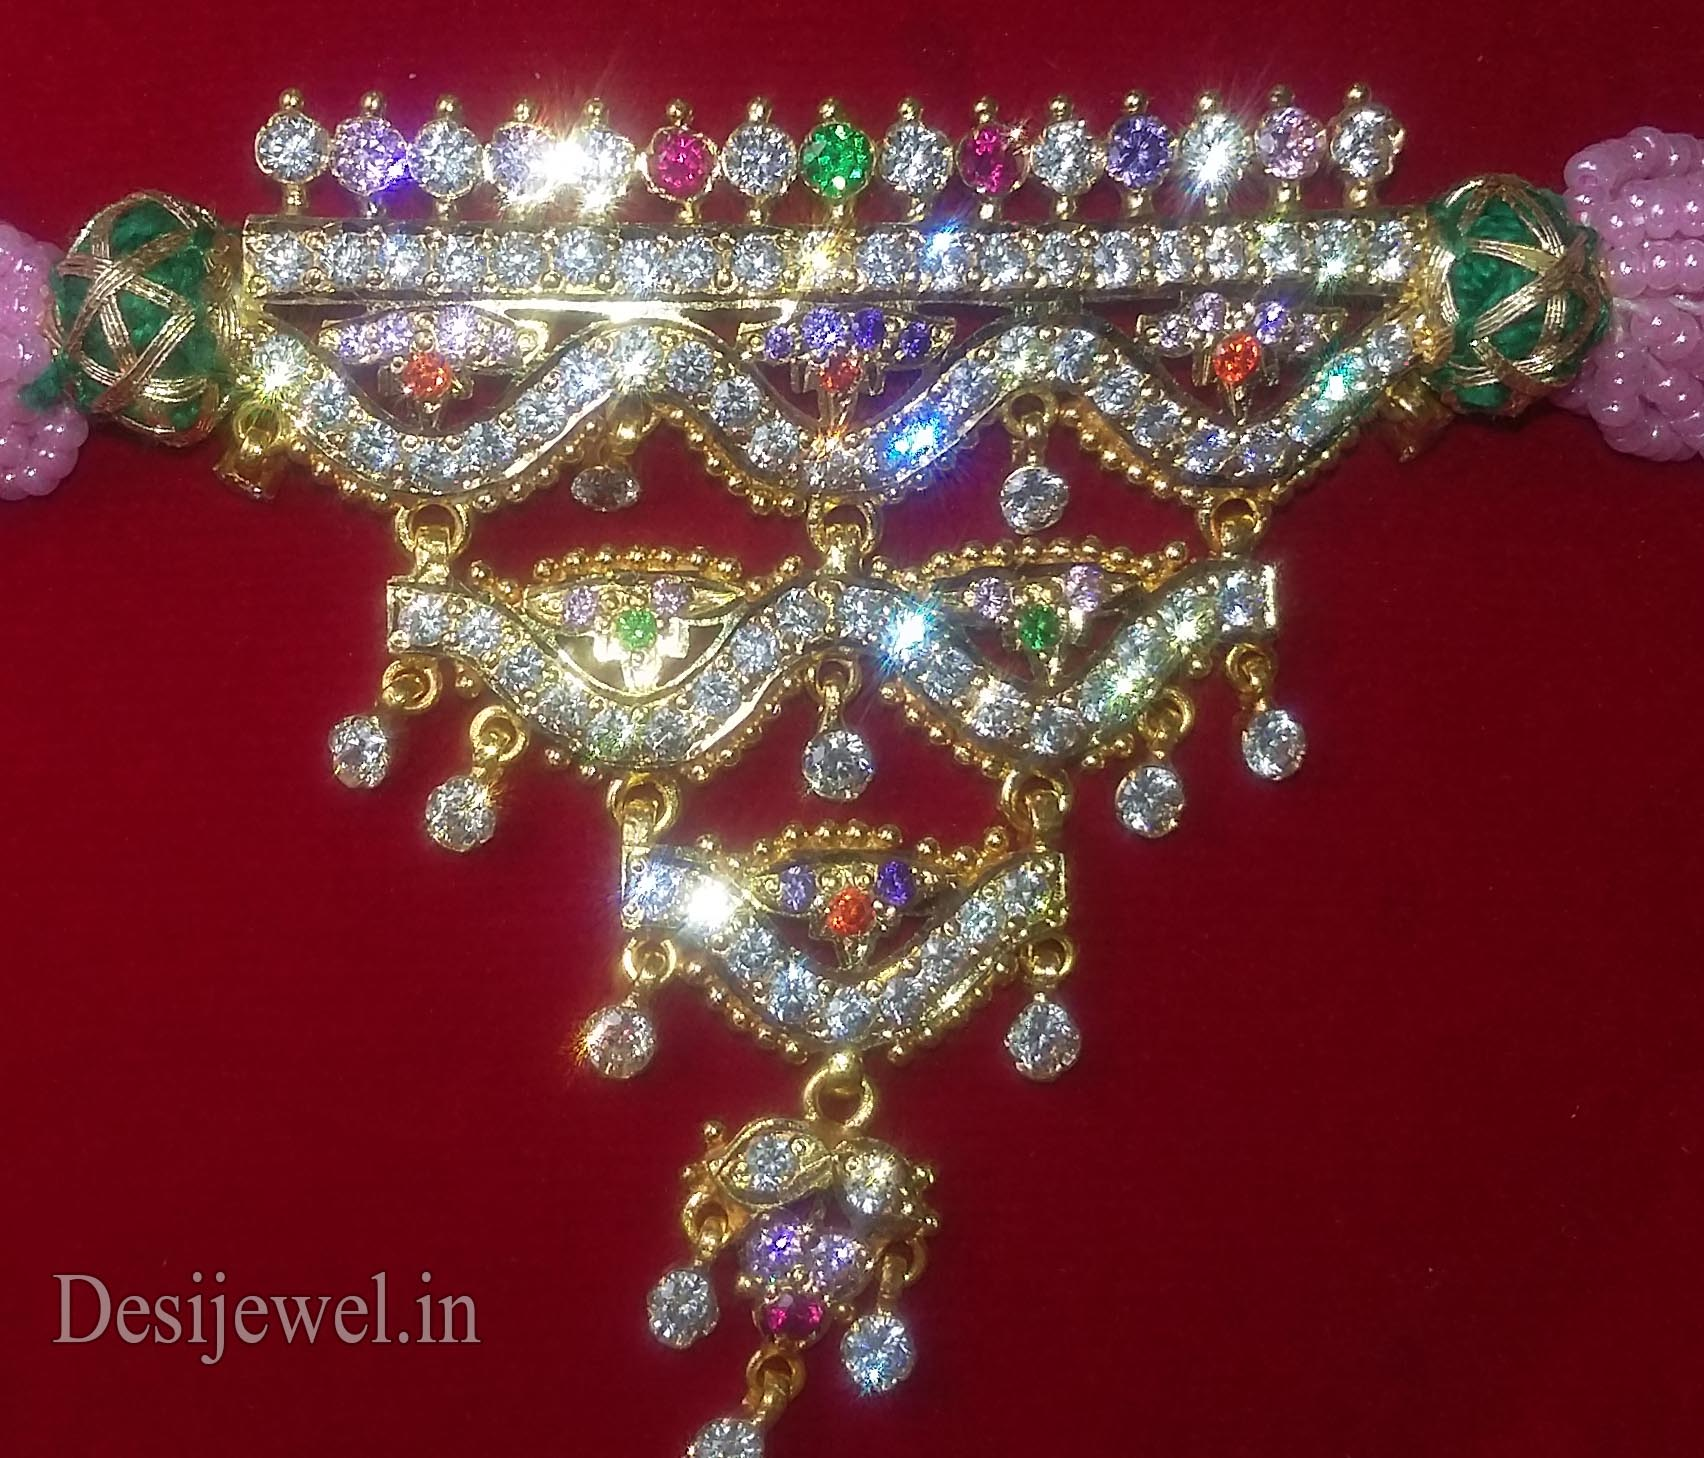 Rajasthani Gold Desi Mini Aad Jewellery  in Jodhpur with weight of 10-12 GM